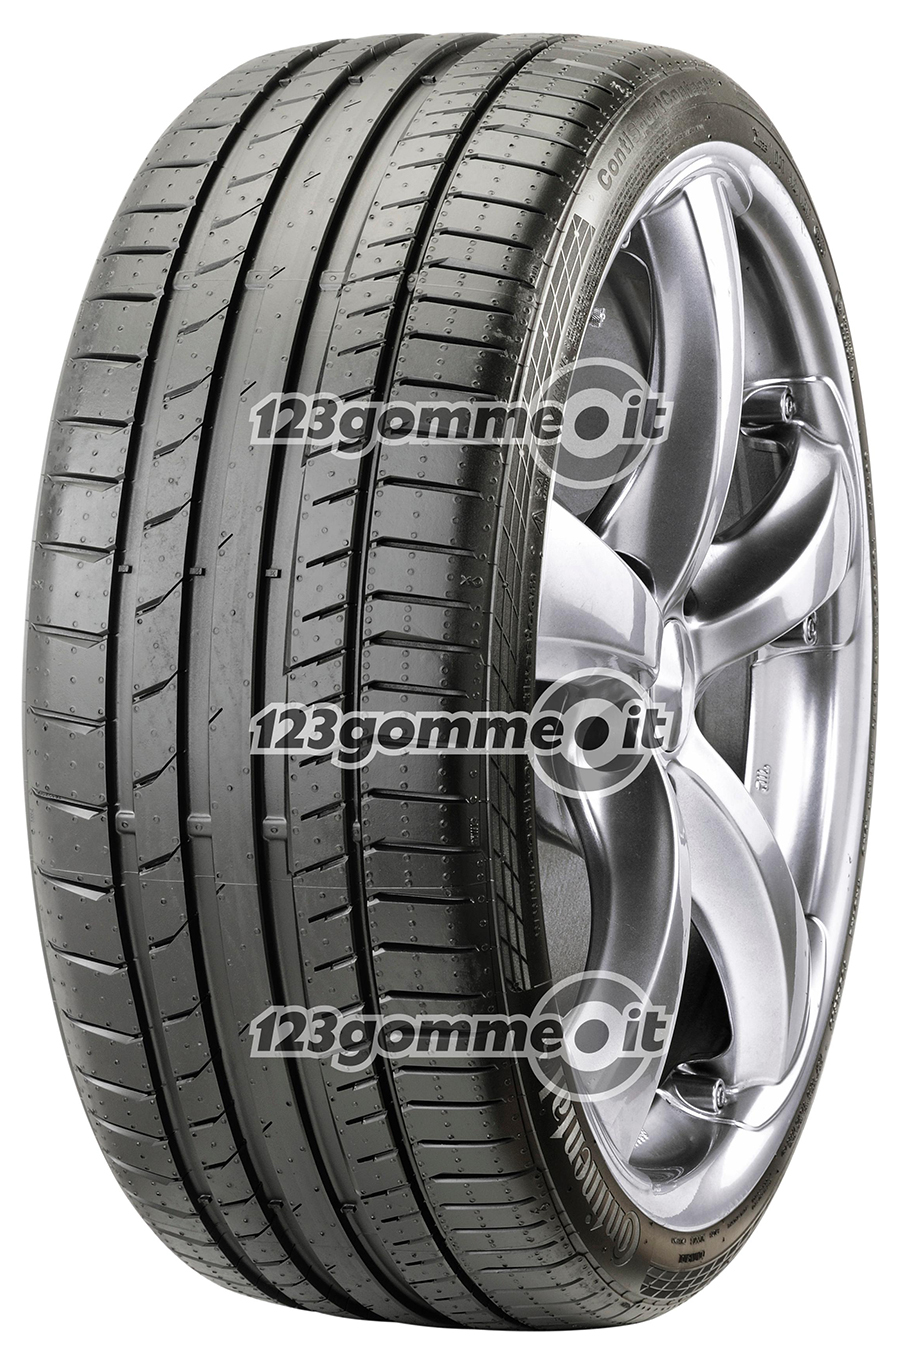 285/30 ZR21(100Y) SportContact 5 P XL RO1 FR SIL  SportContact 5 P XL RO1 FR SIL